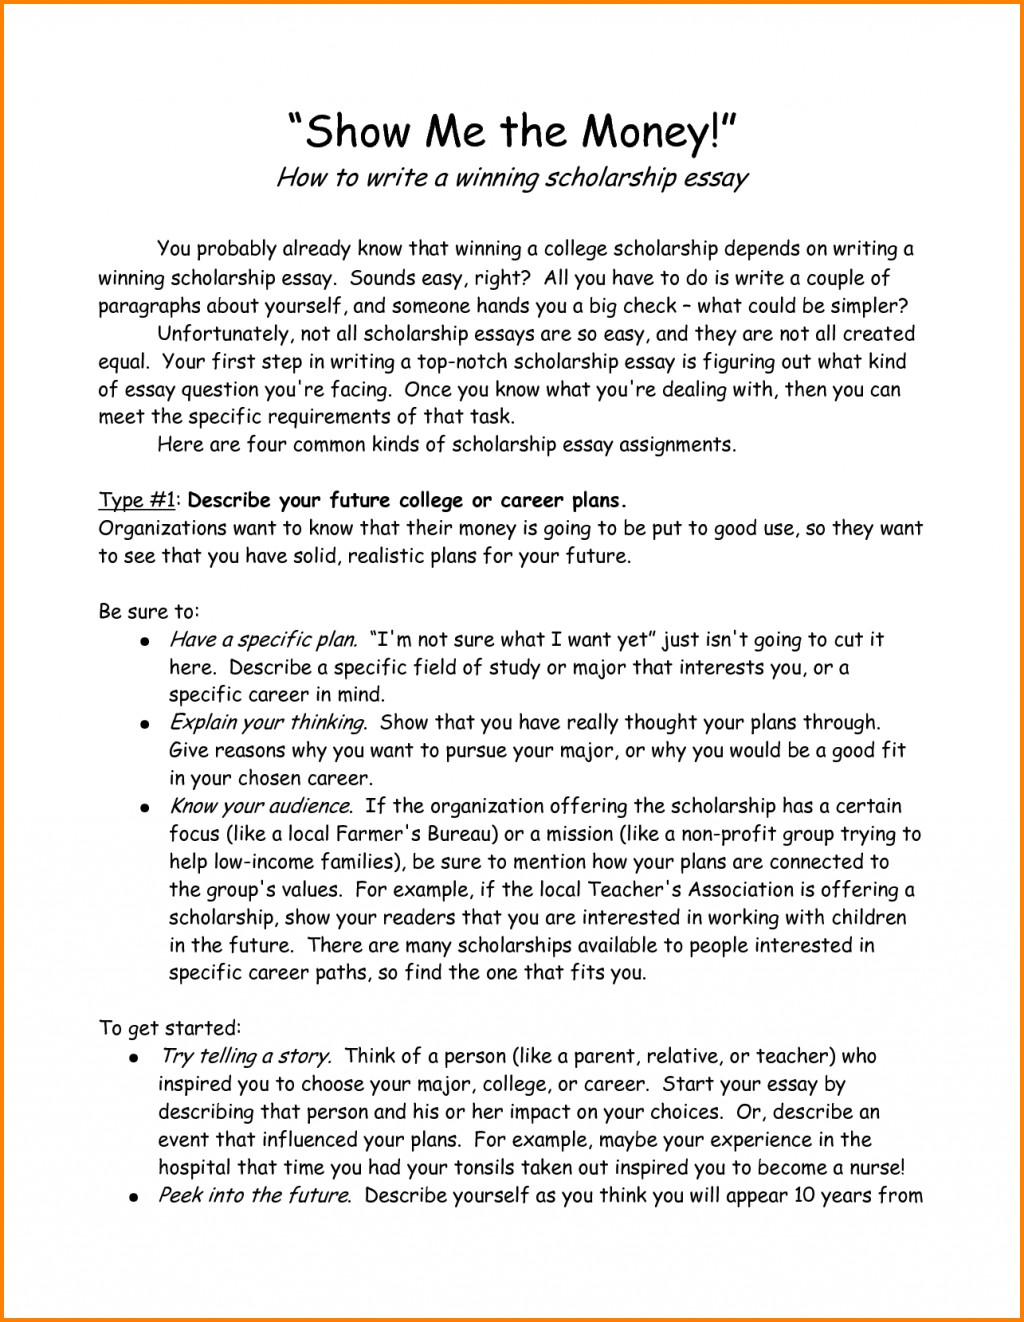 010 How To Start Scholarship Essay Letter Template Word Best Way Write College L Begin An Incredible On A Book You Didn't Read Open Paragraph About Yourself For Large